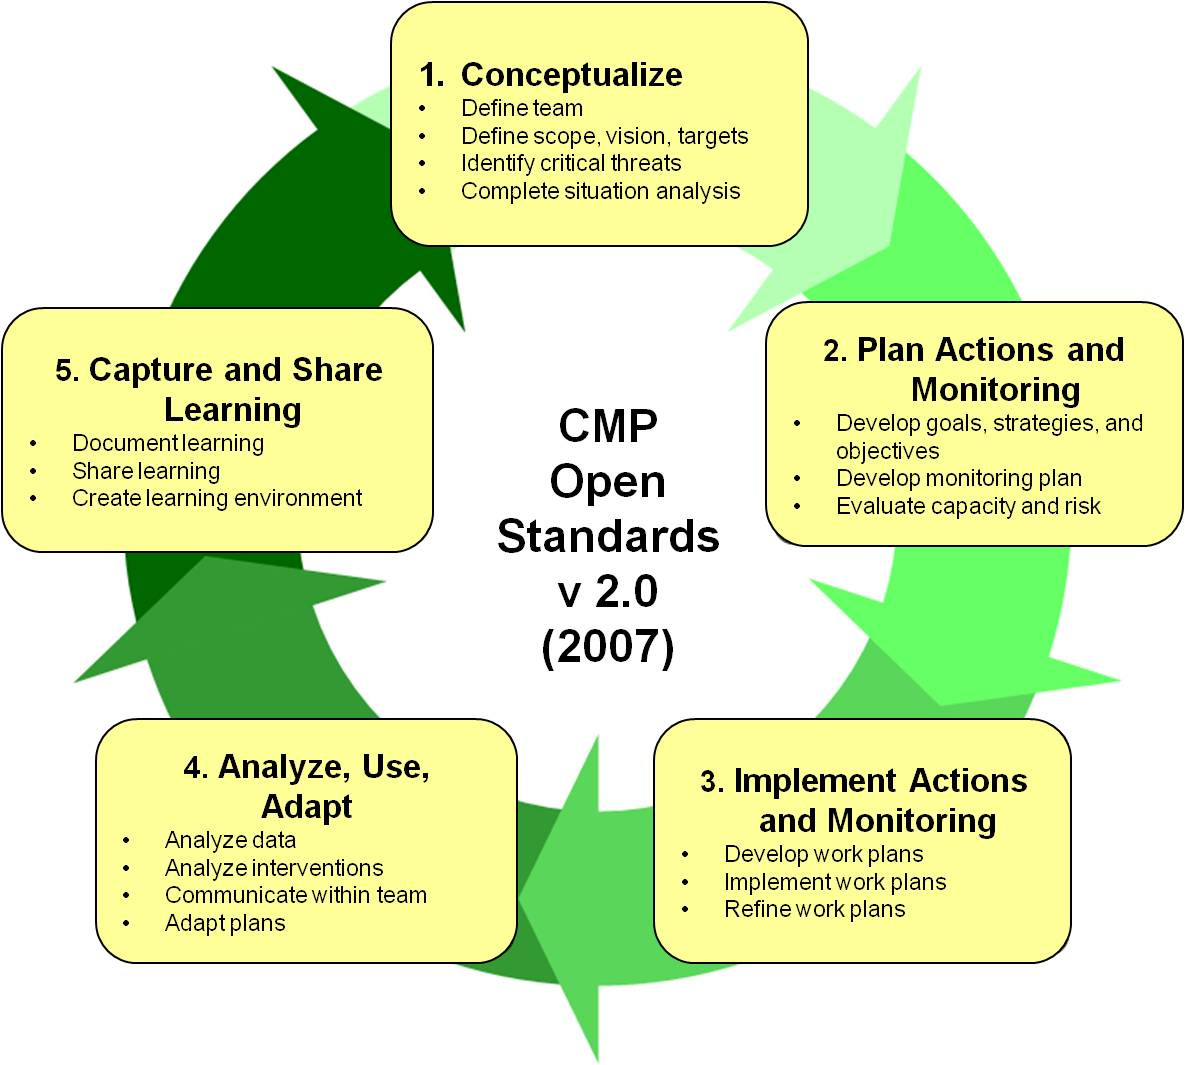 The Open Standards represent a project management cycle with five major steps, which are in turn made up of a total of sixteen basic practices